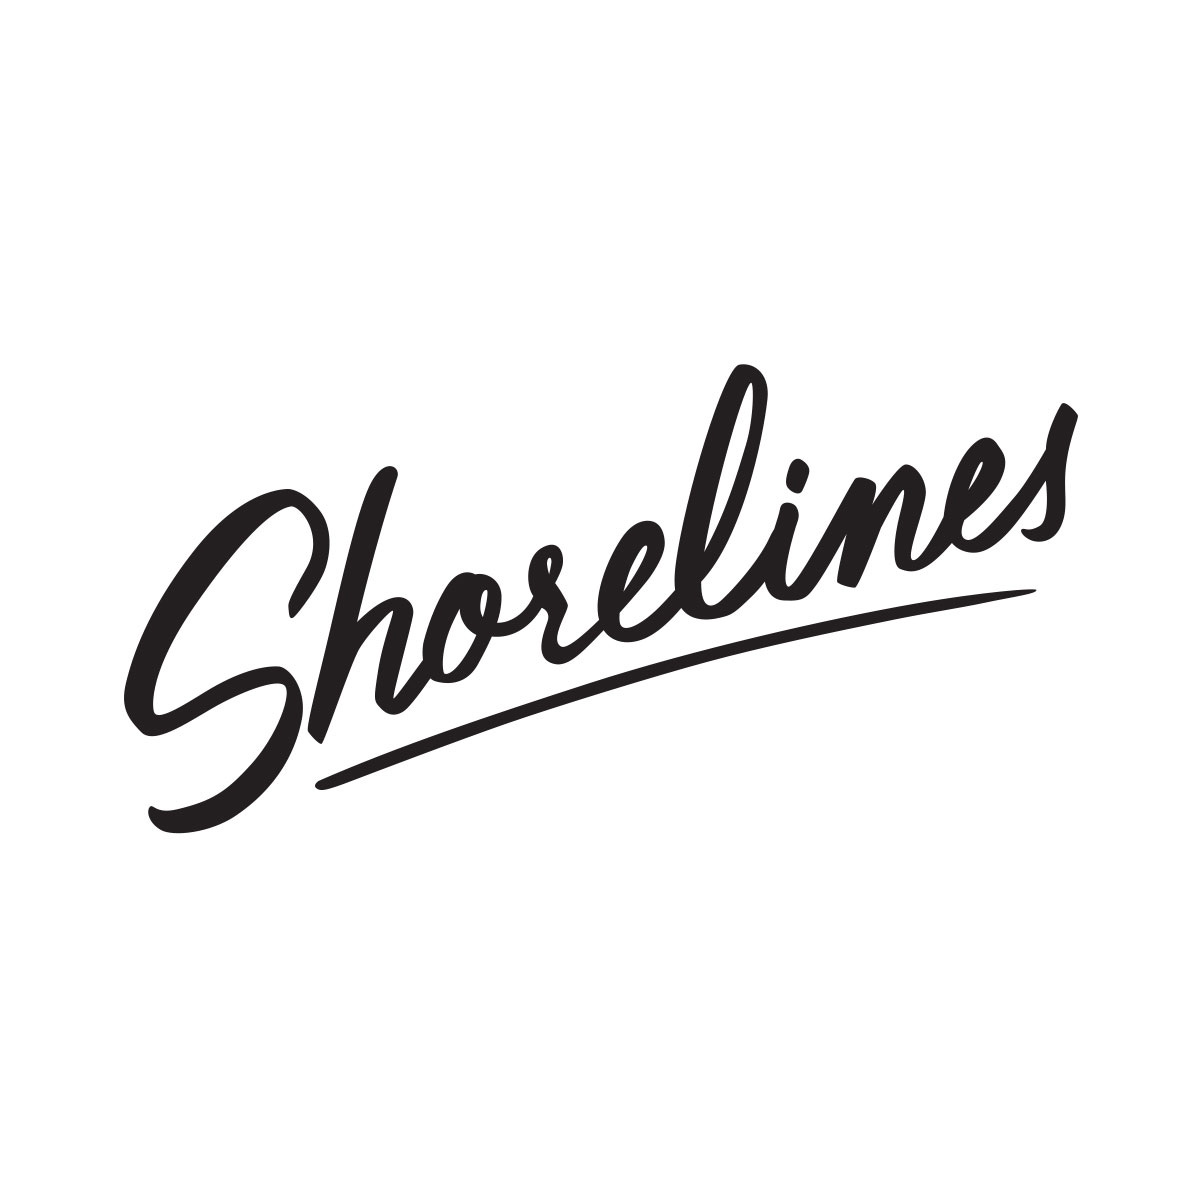 shorelnies.jpg